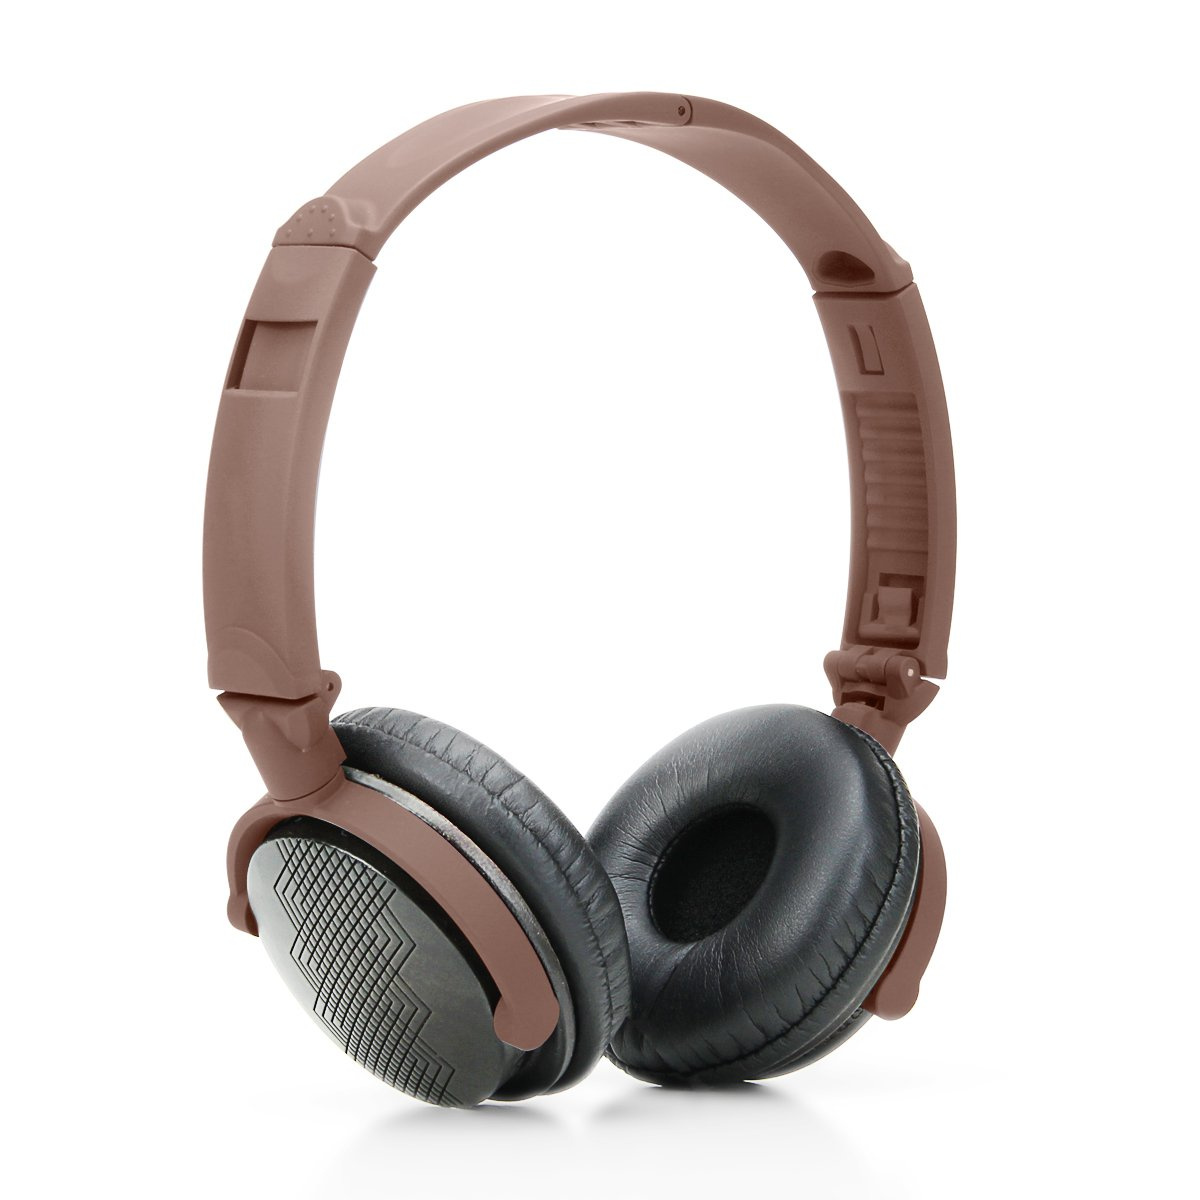 Wood Headphones by GOgroove - AudioLUX WD Natural Wooden Over Ear Headphones with High-Fidelity Drivers, In-Line Microphone, Braided Detachable Cable, Compact Folding Design and Hemp Carrying Bag by GOgroove